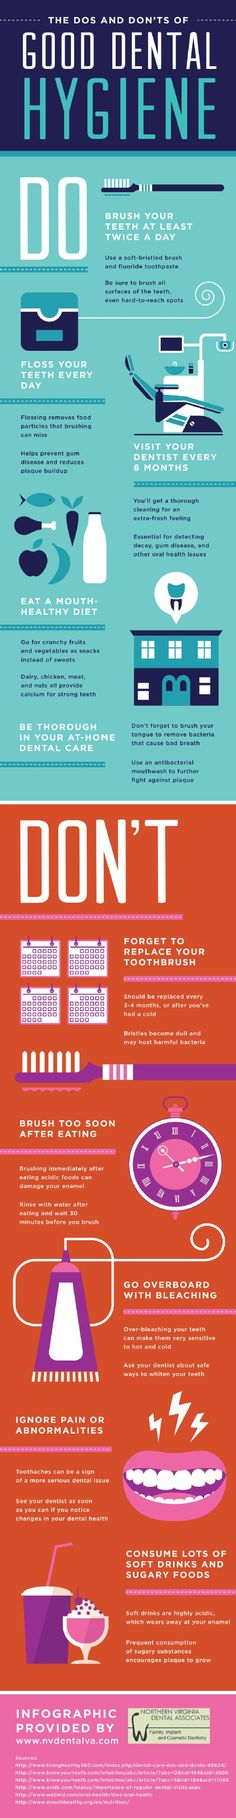 Visiting your dentist every 6 months can help you maintain and clean and healthy mouth! Get a Dental Plan to save on dental care!